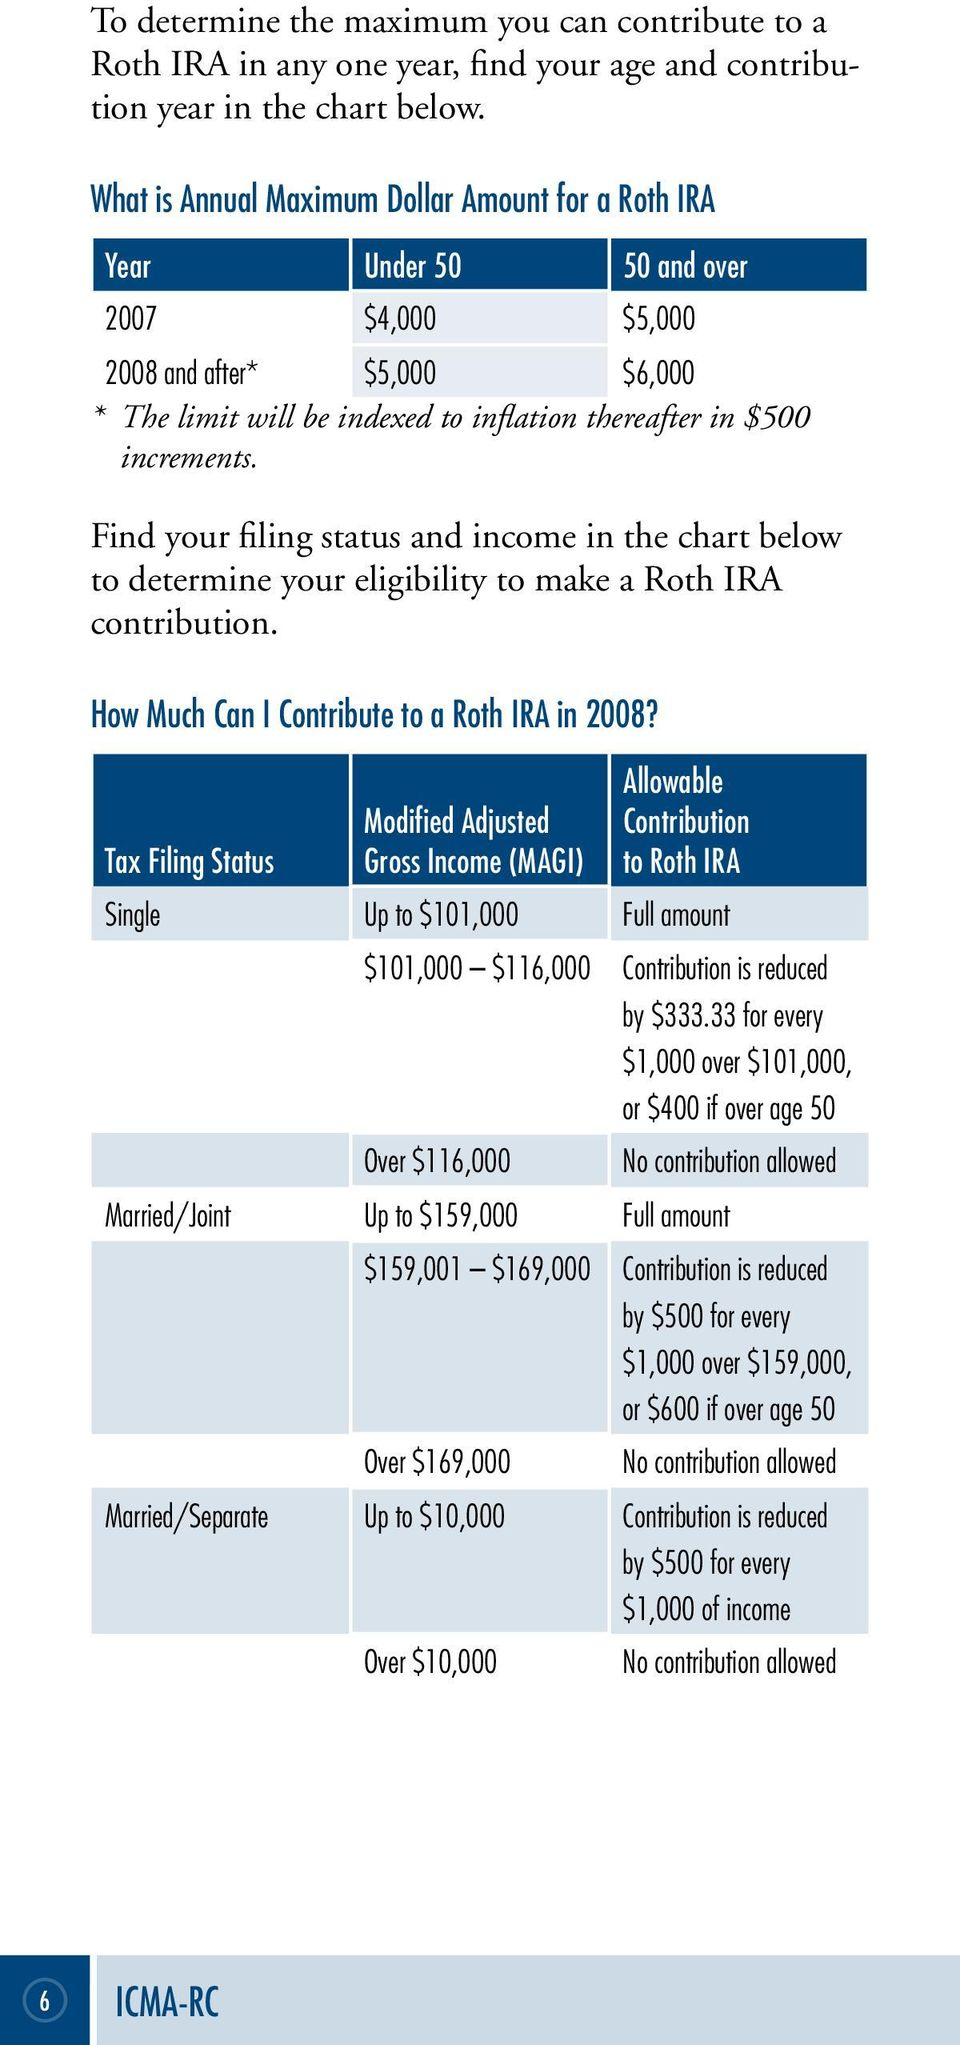 Find your filing status and income in the chart below to determine your eligibility to make a Roth IRA contribution. How Much Can I Contribute to a Roth IRA in 2008?